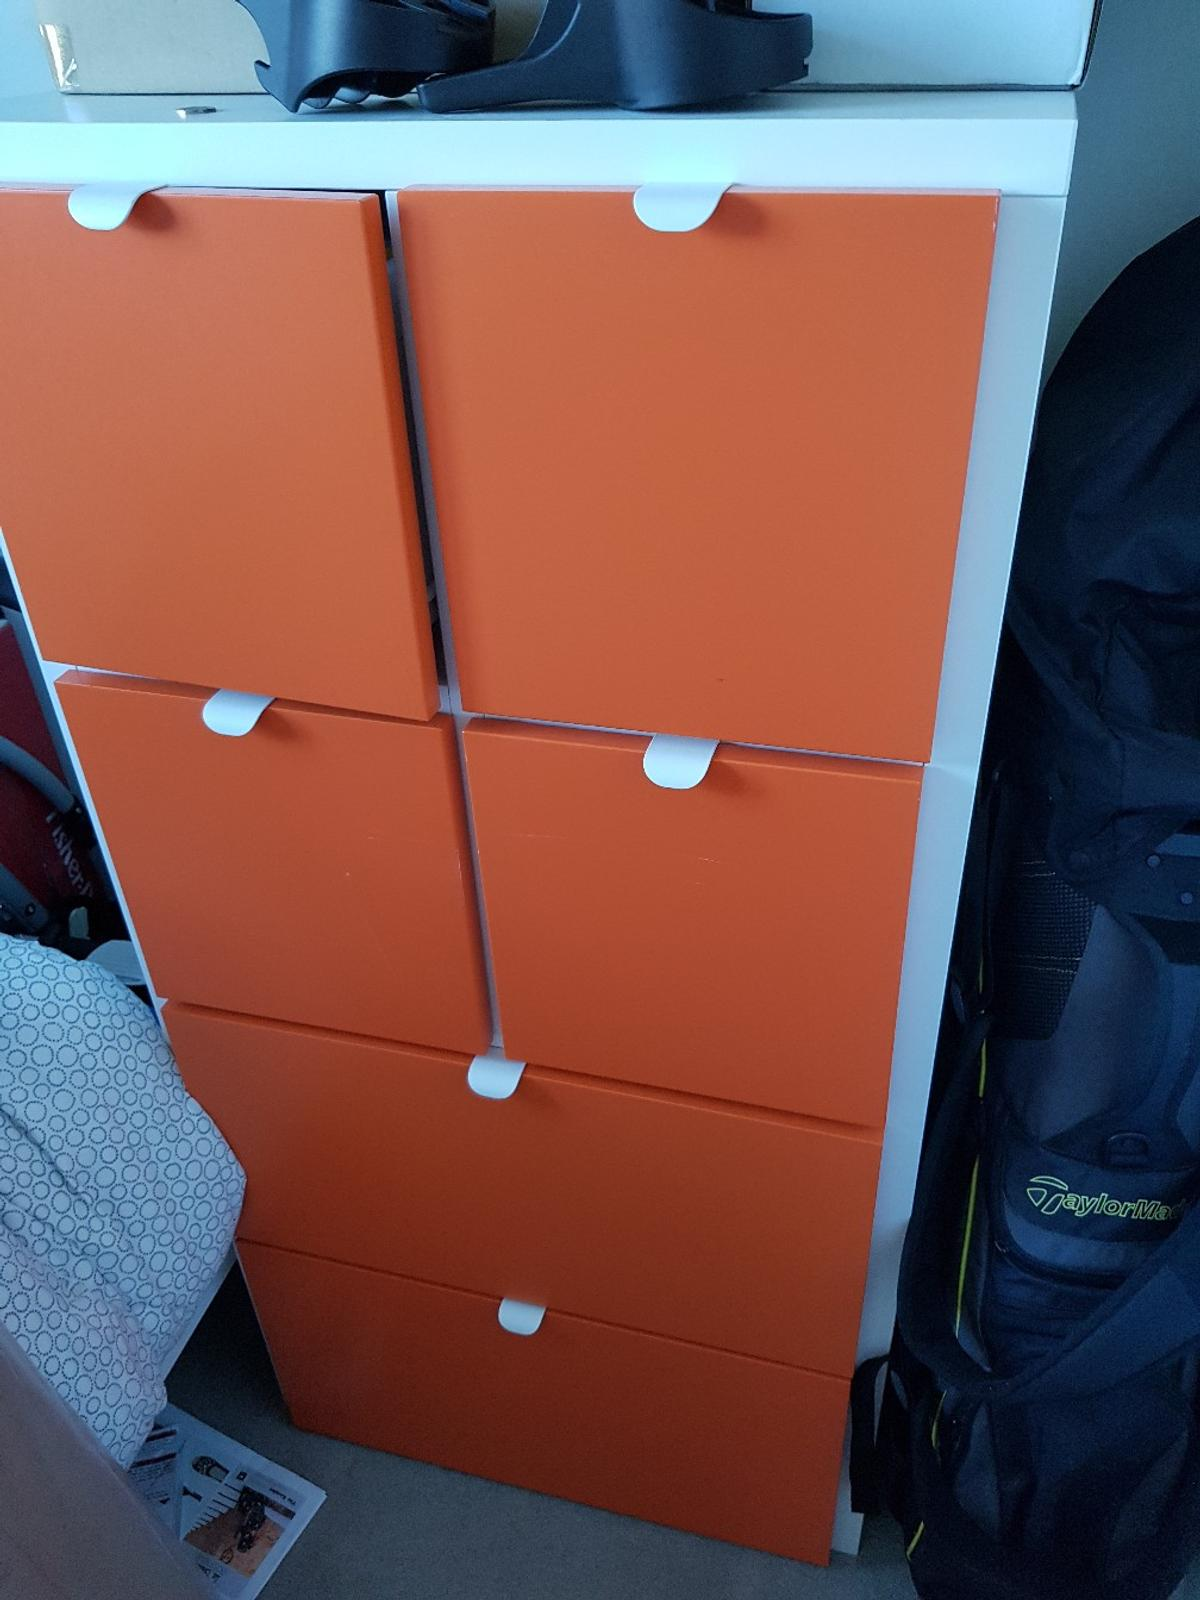 Visthus Ikea Chest Of Drawers Orange White In W12 London For